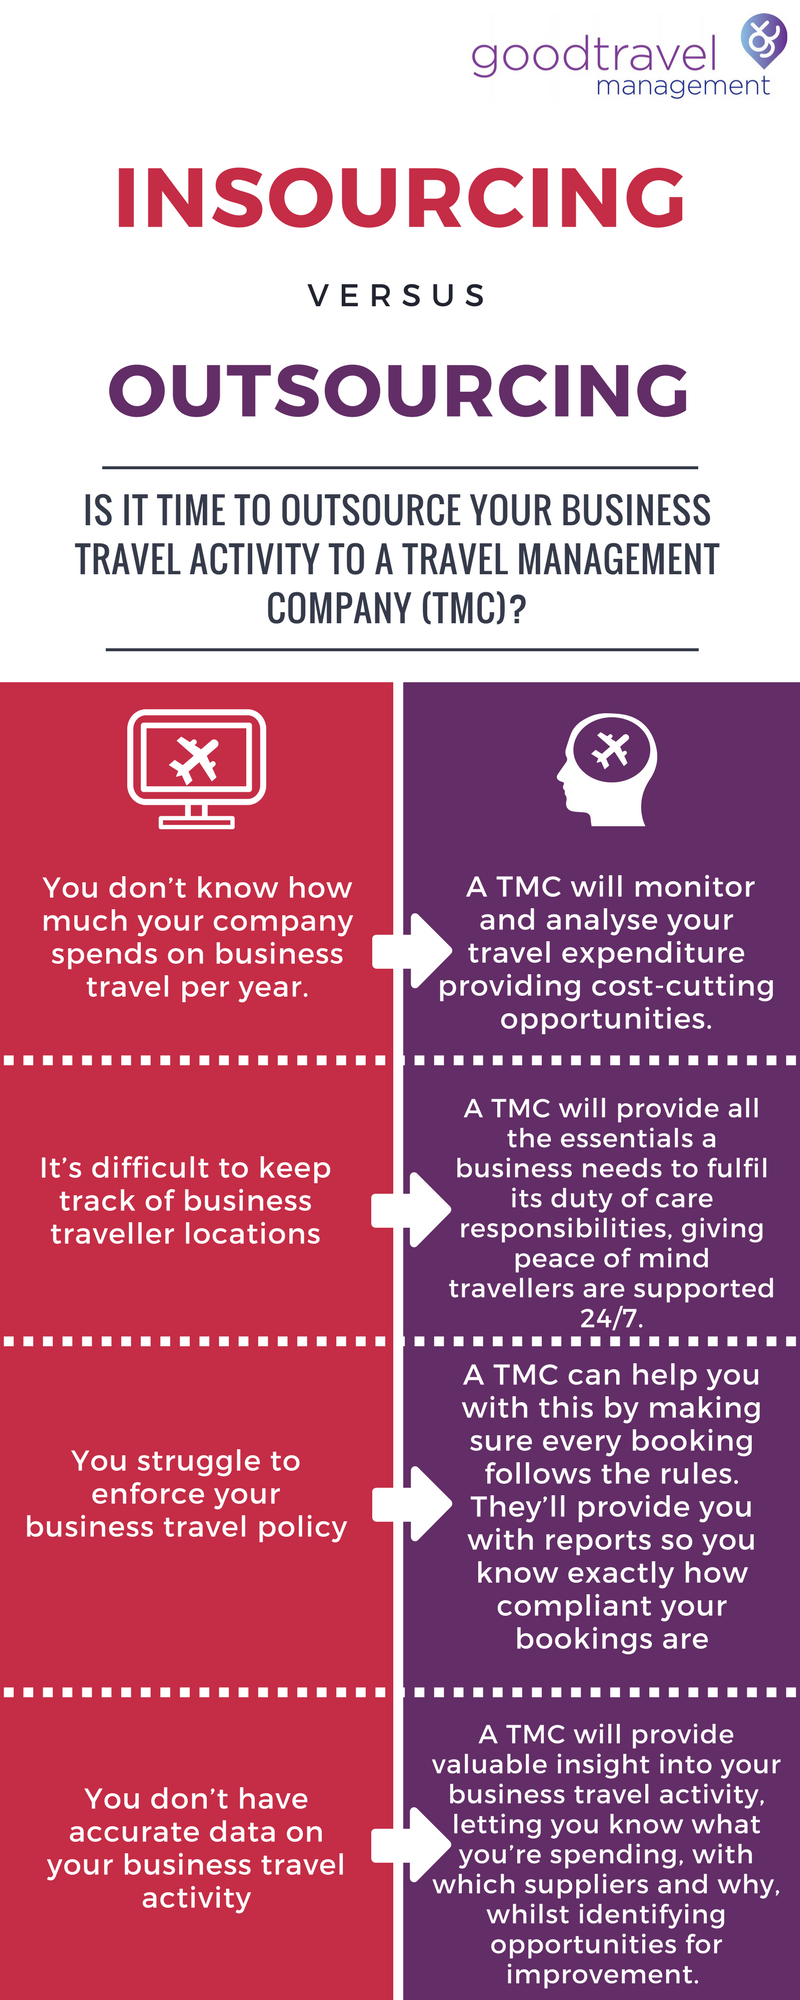 Infographic - Is it time to outsource your business travel activity to a travel management company?